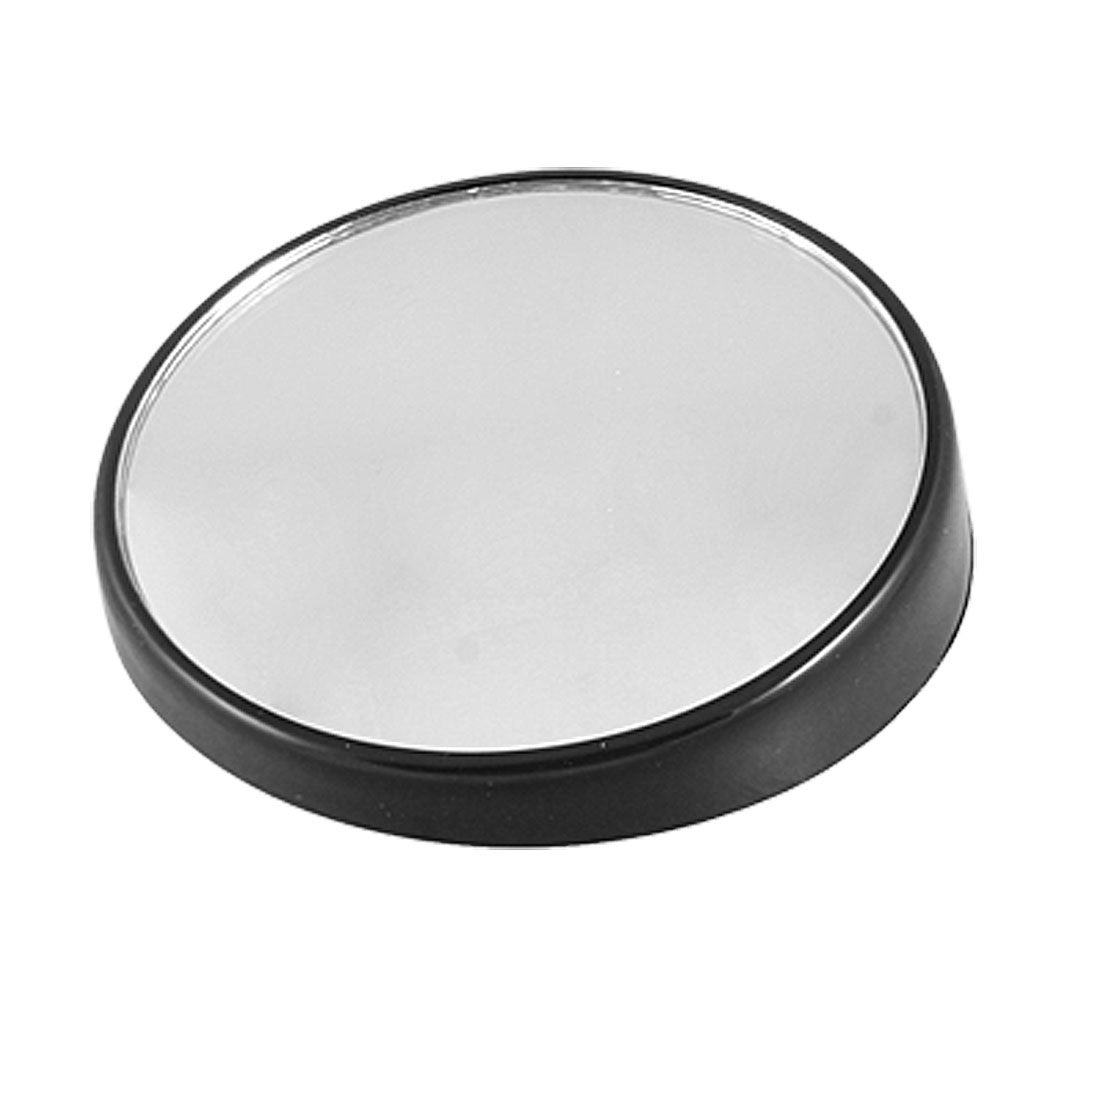 78mm Round Convex Rearview Blind Spot Mirror for Car Auto